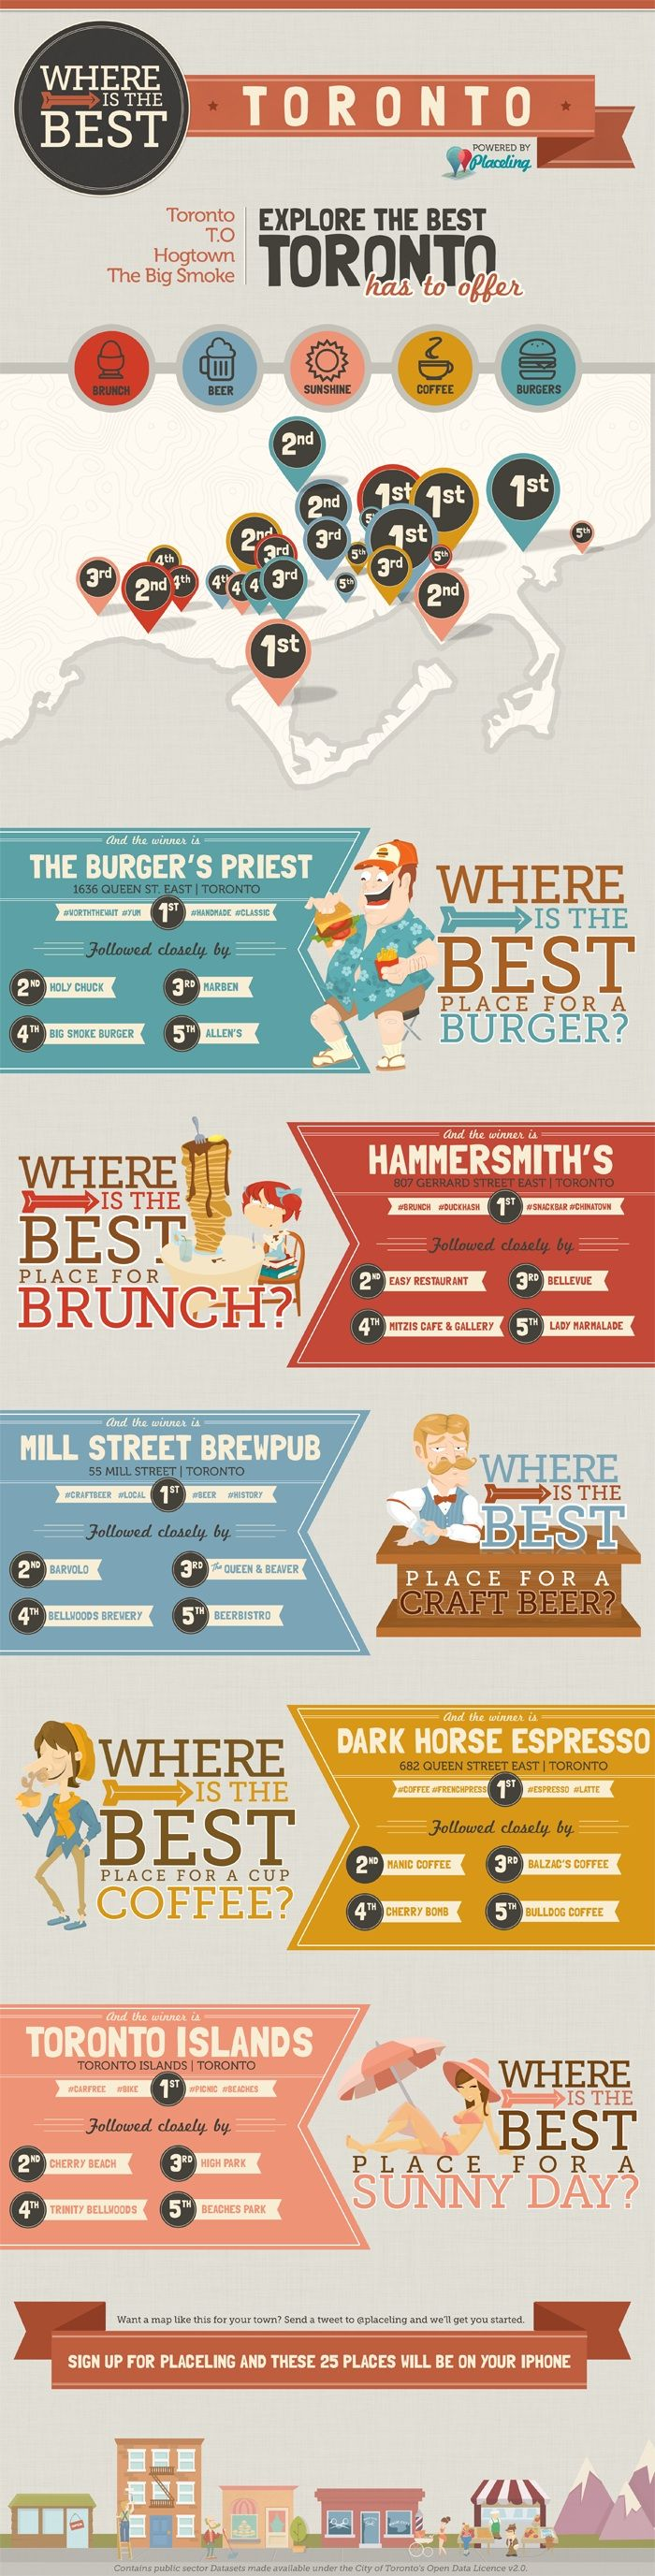 The Best of Toronto. Love this guide to places to eat and visit in Toronto! Coffee shops and brunch are important to me ;)